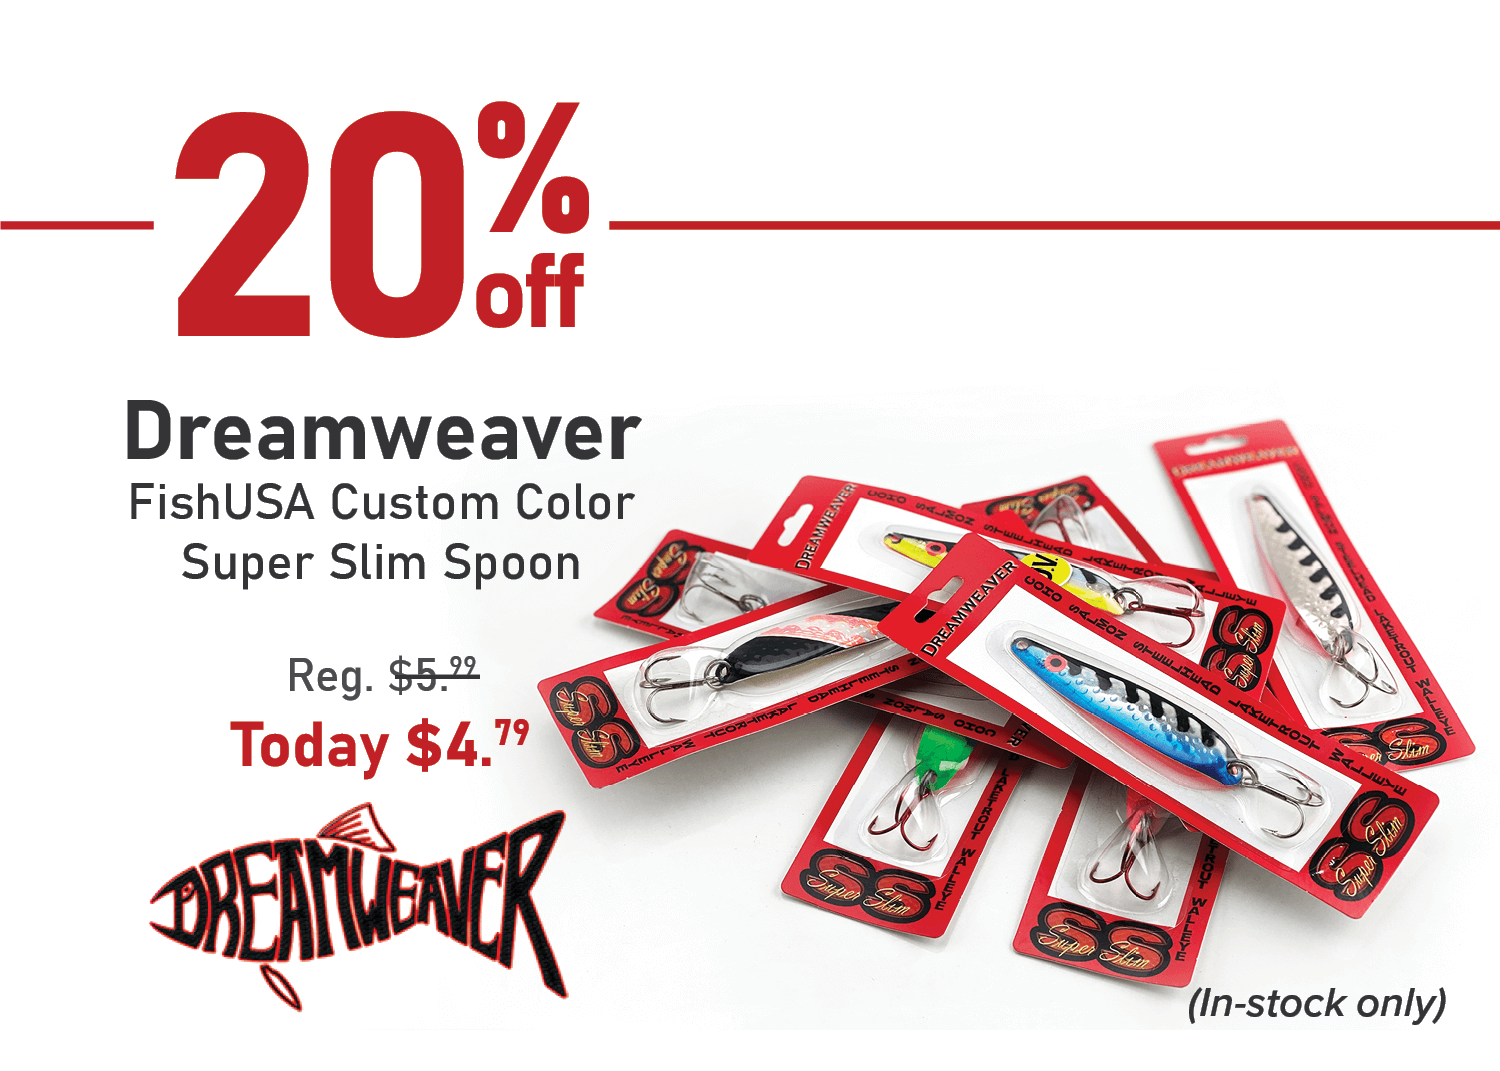 Save 20% on the Dreamweaver FishUSA Custom Color Super Slim Spoon